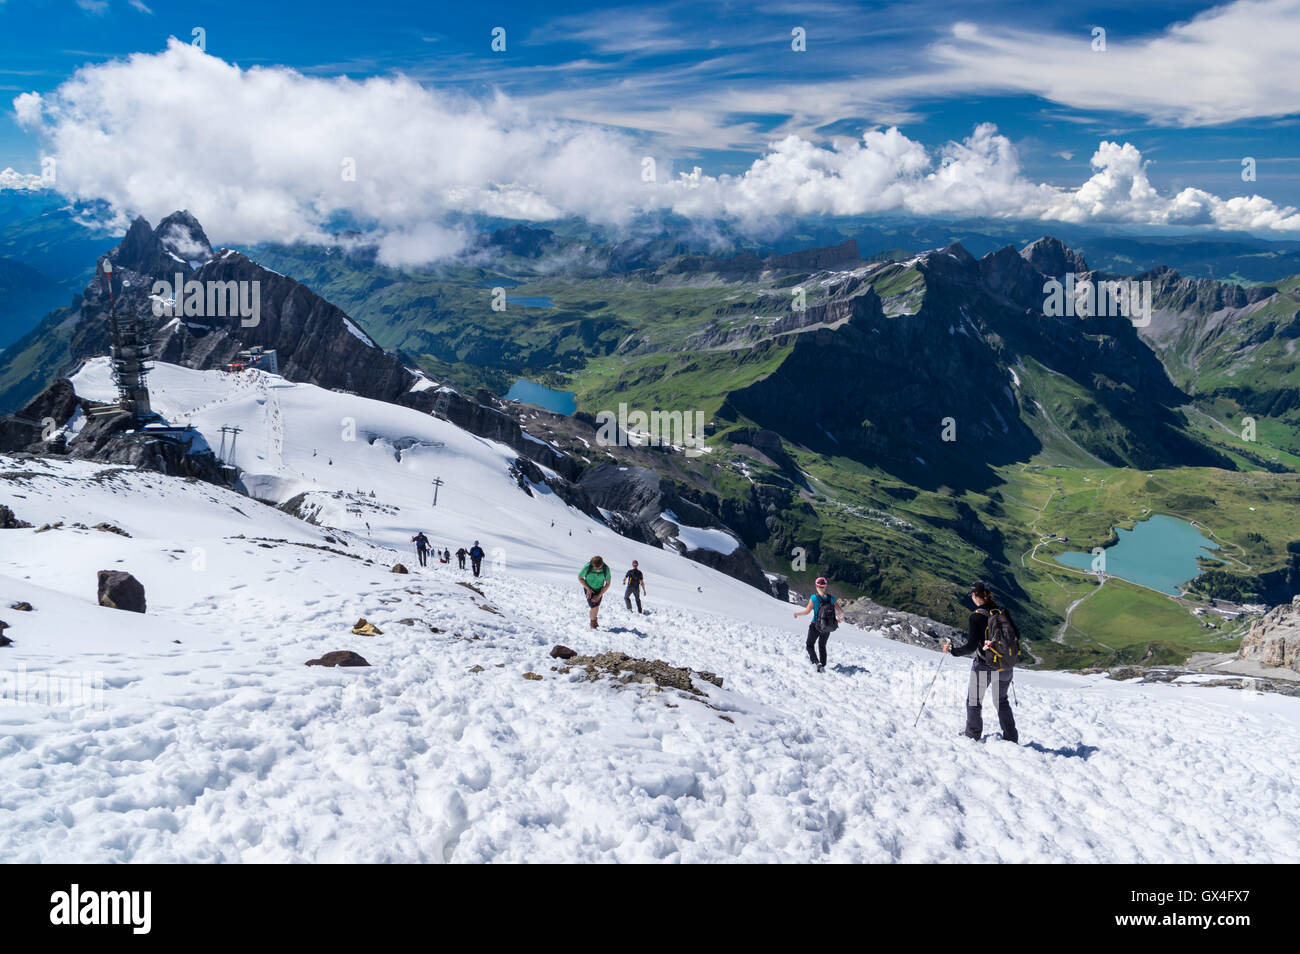 Hikers on the snow descending from Titlis mountain summit to the Titlis cable car station. Engelberg, Switzerland. Stock Photo